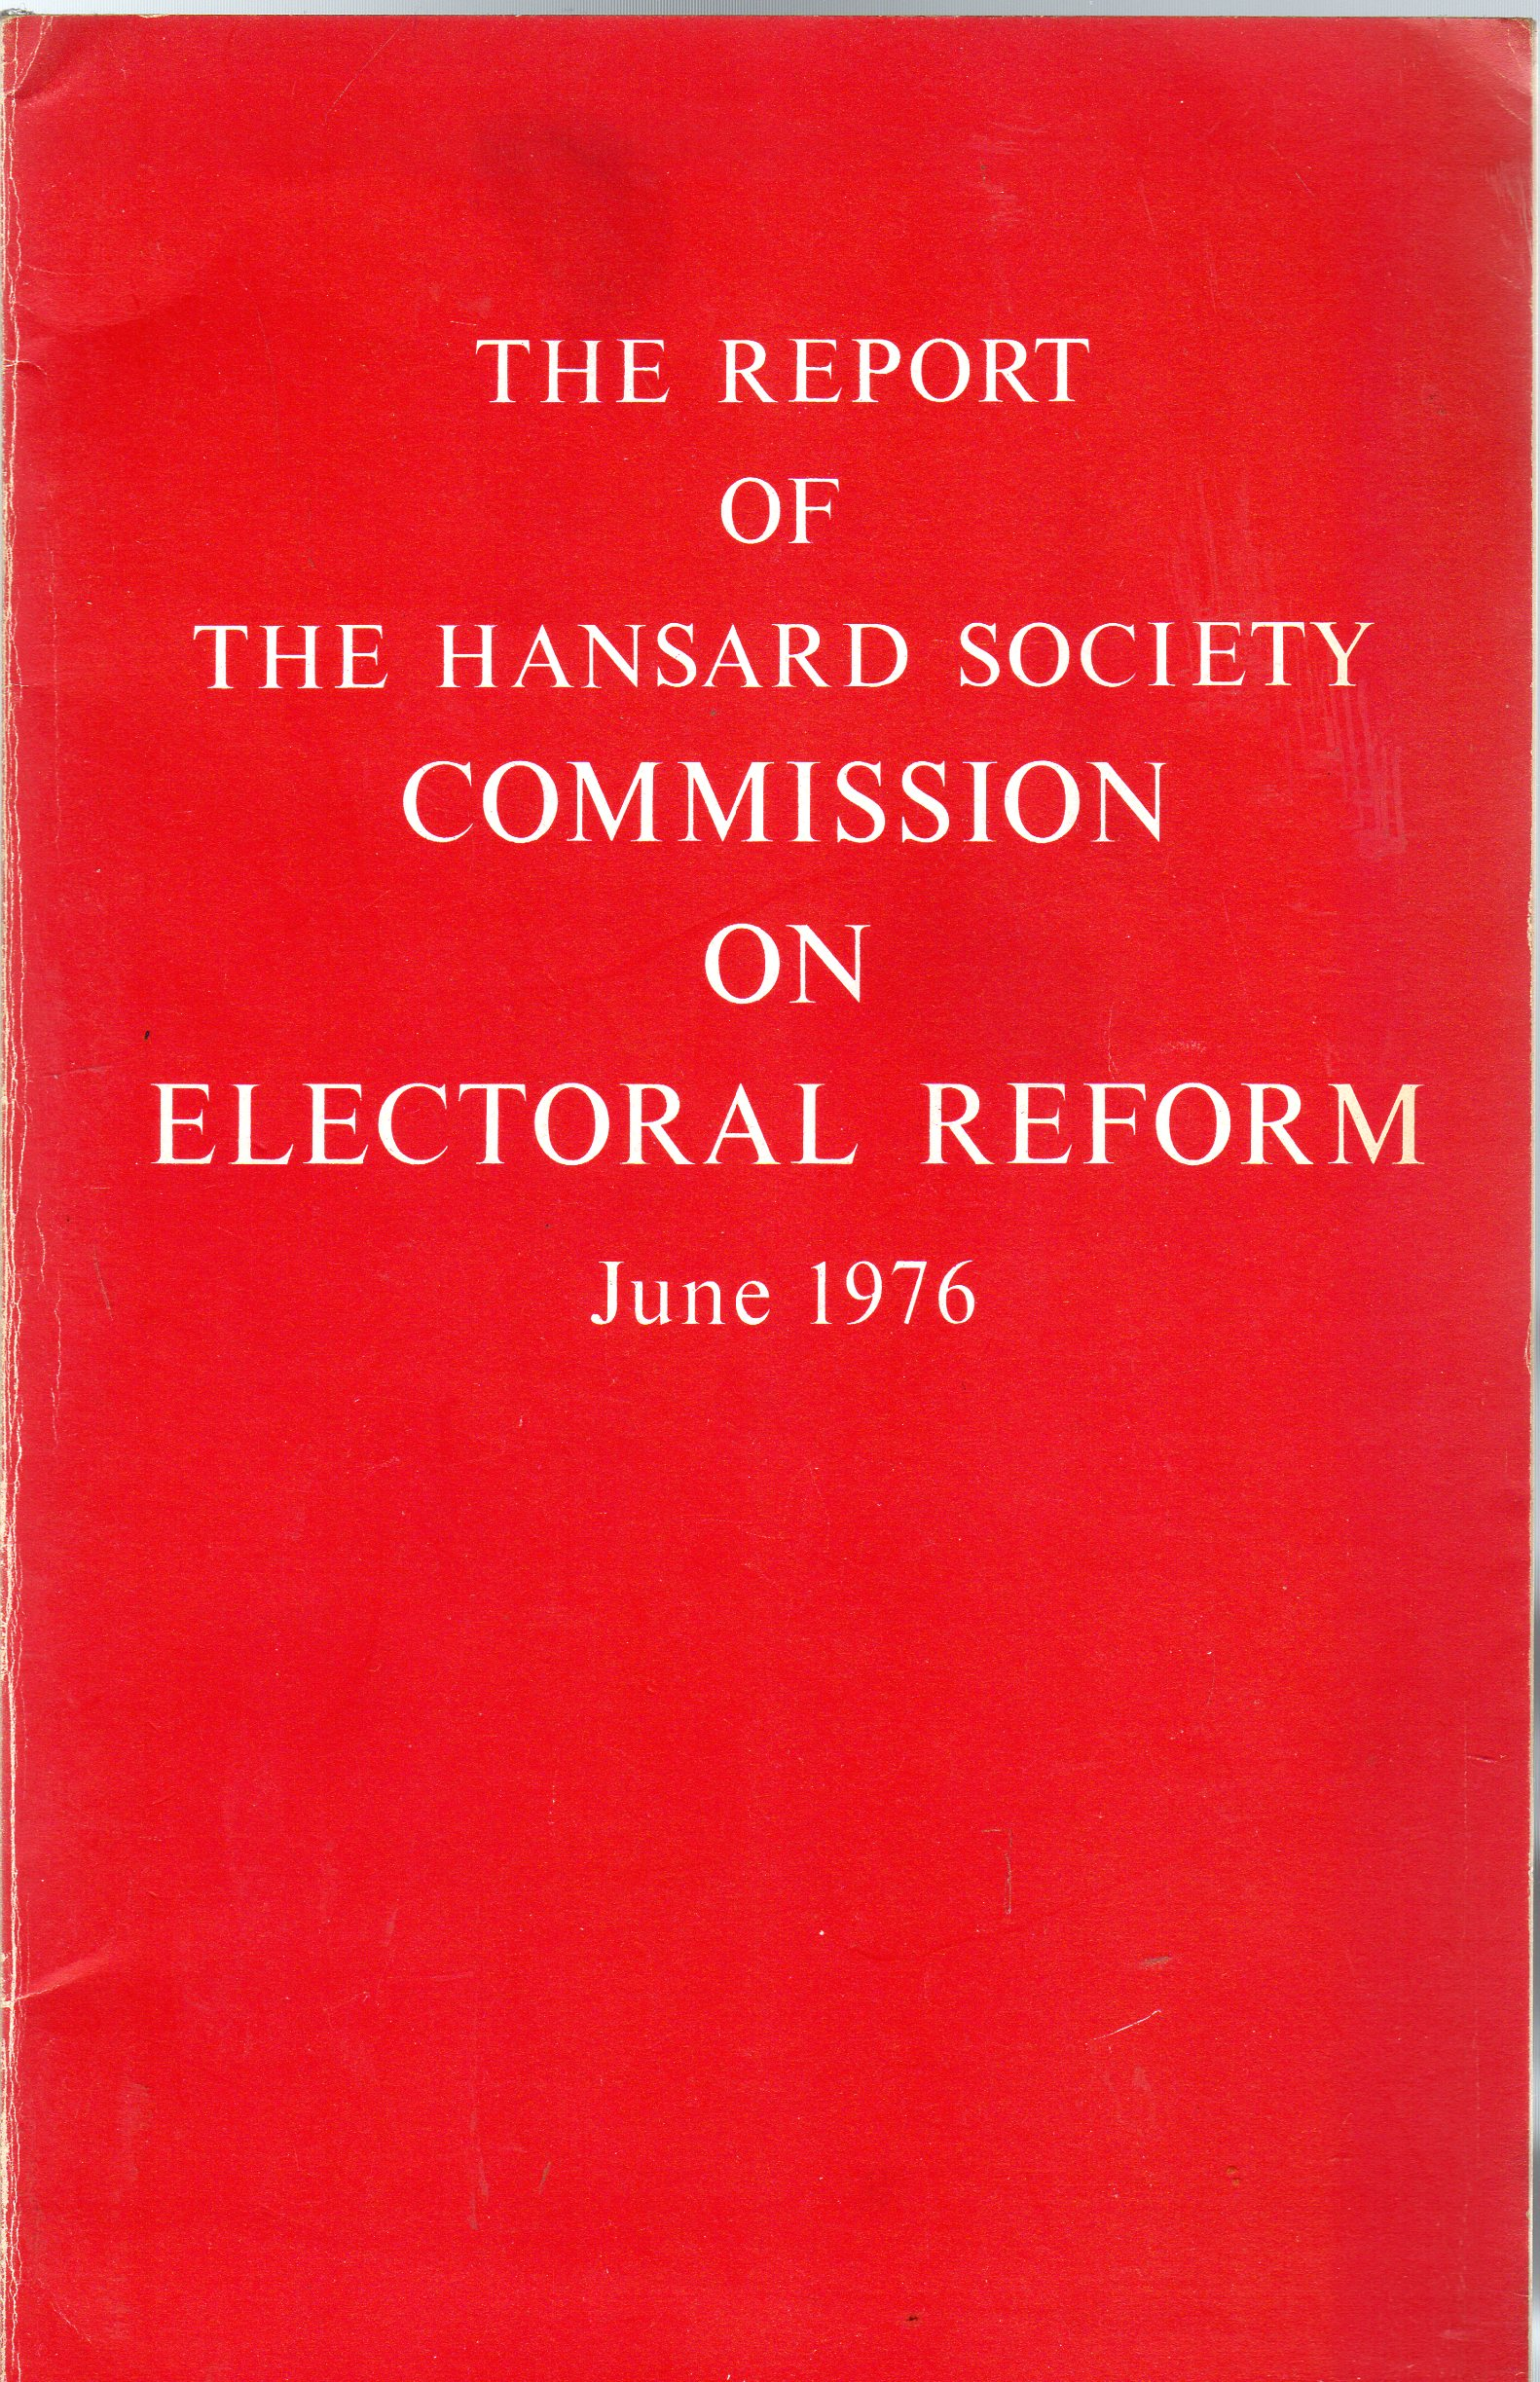 Image for The Report of the Hansard Society Commission on Electoral Reform, June 1976